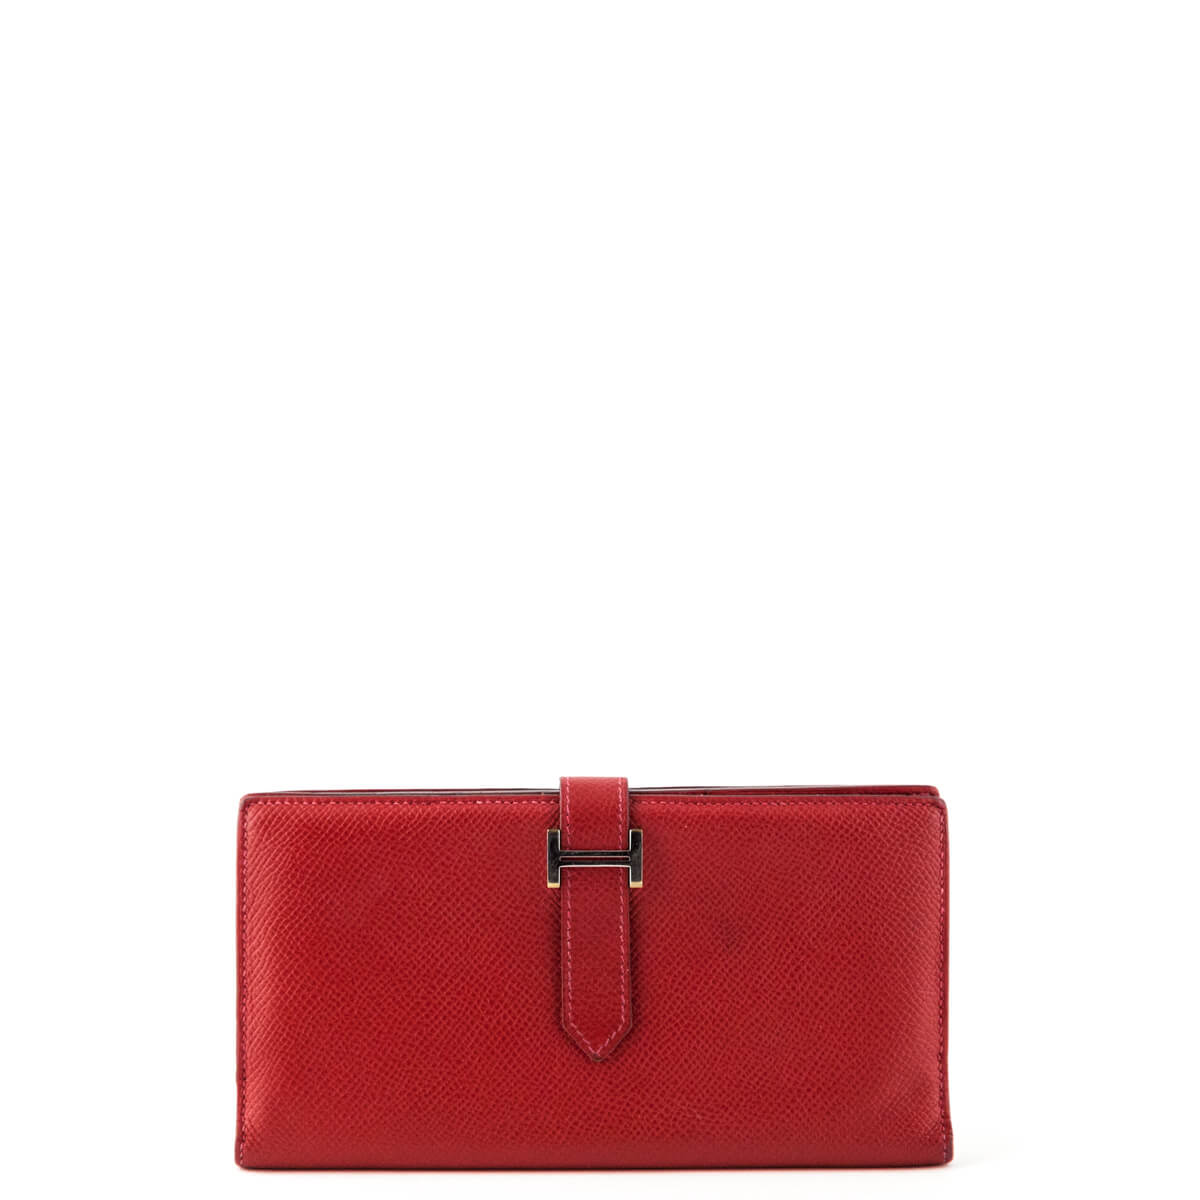 Hermes Red Epsom Bearn Wallet - LOVE that BAG - Preowned Authentic Designer  Handbags ... 26b3a6f0be502